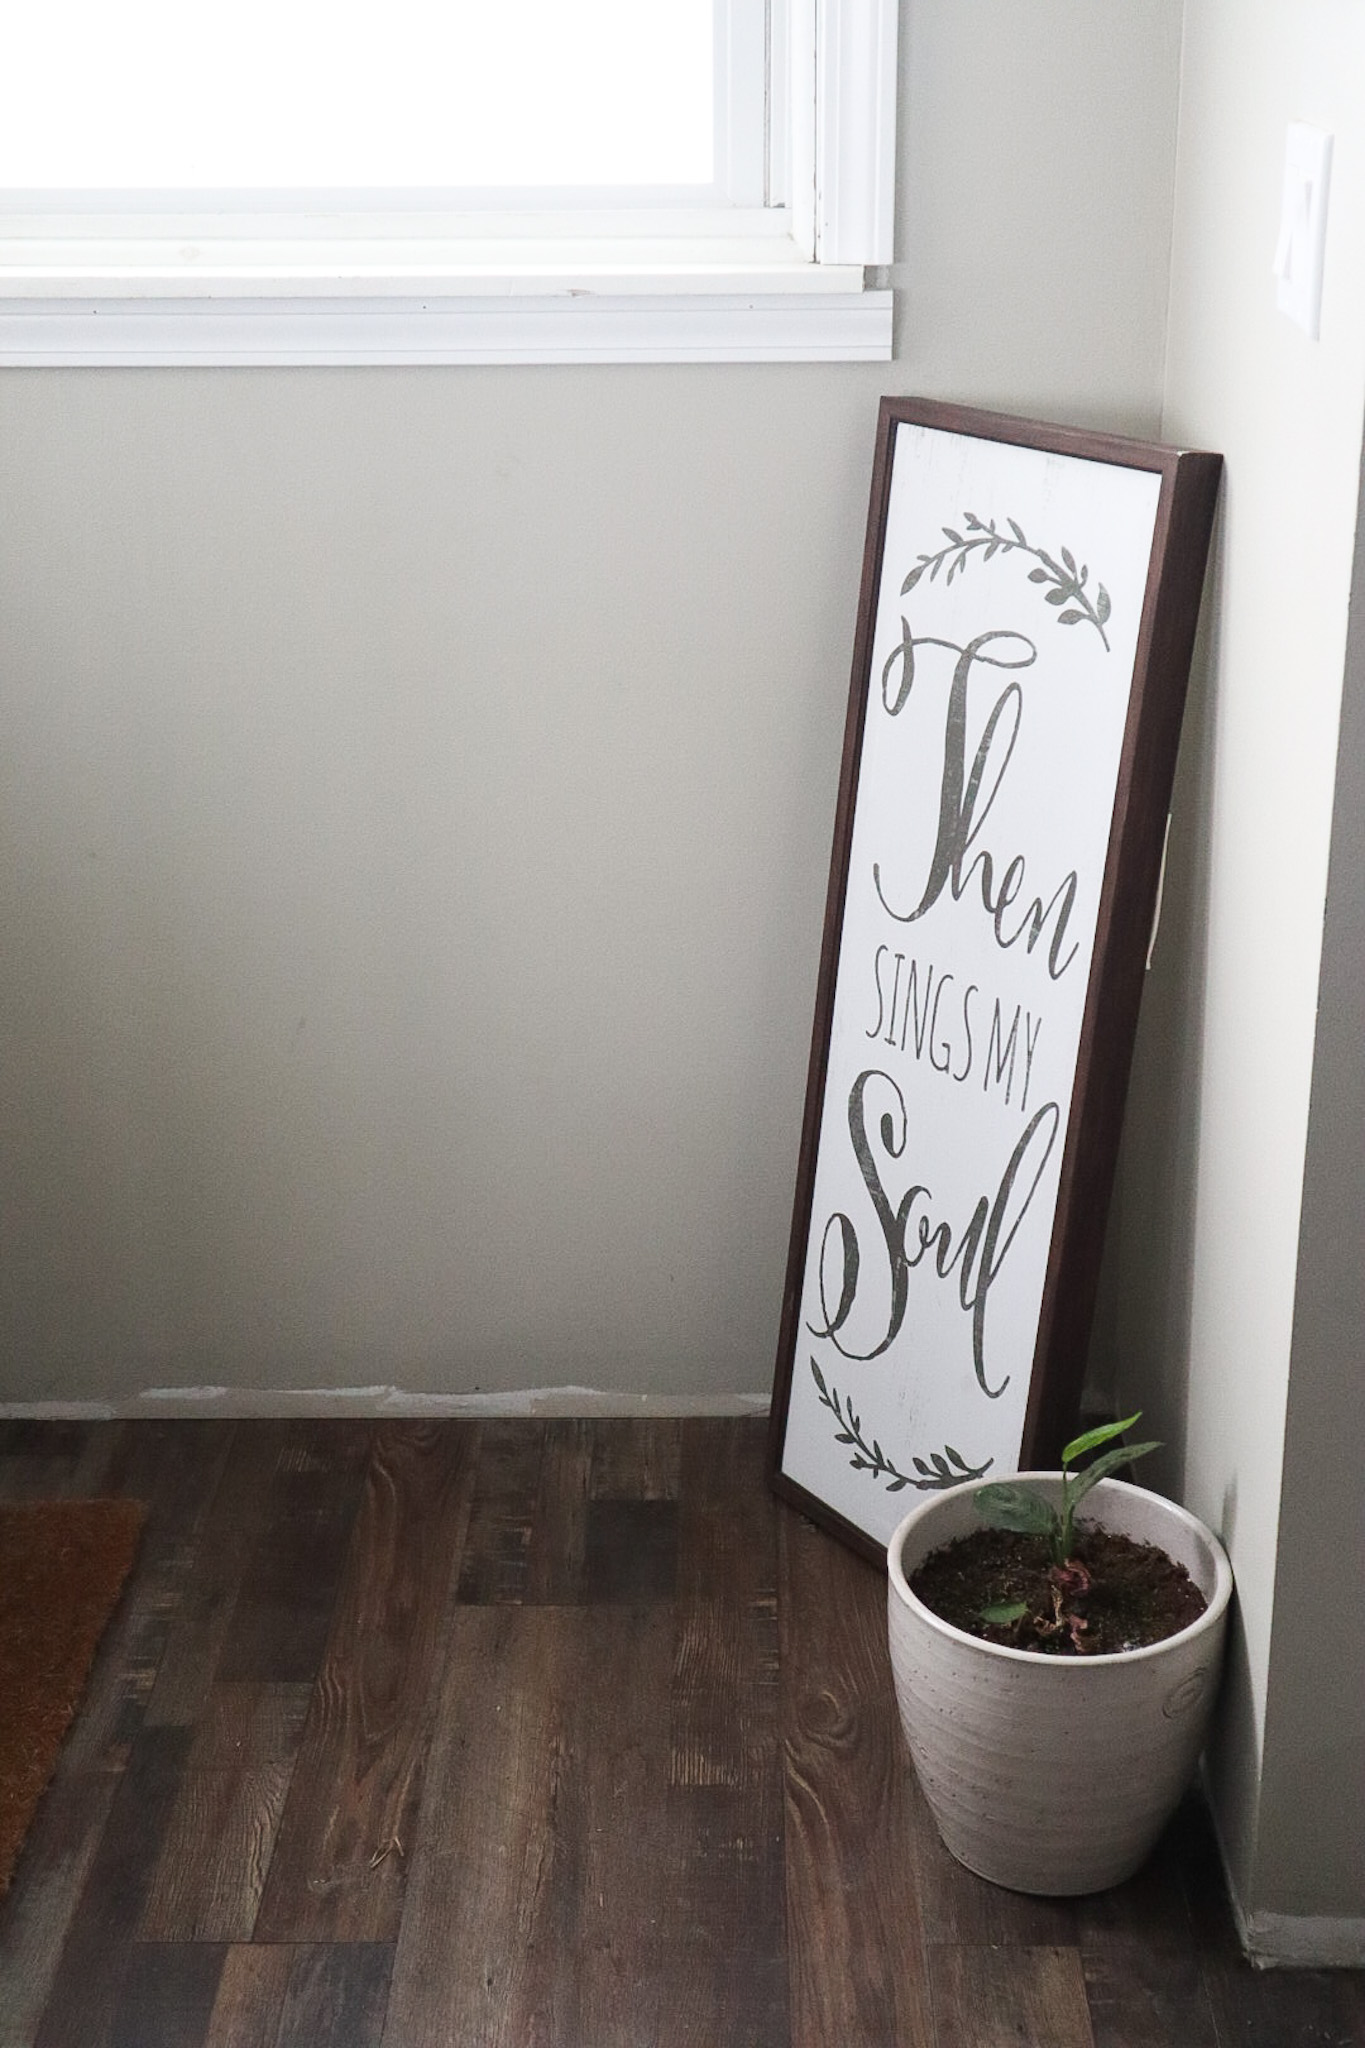 Sign in the corner of the wall that brings the feeling to the home when you walk in.